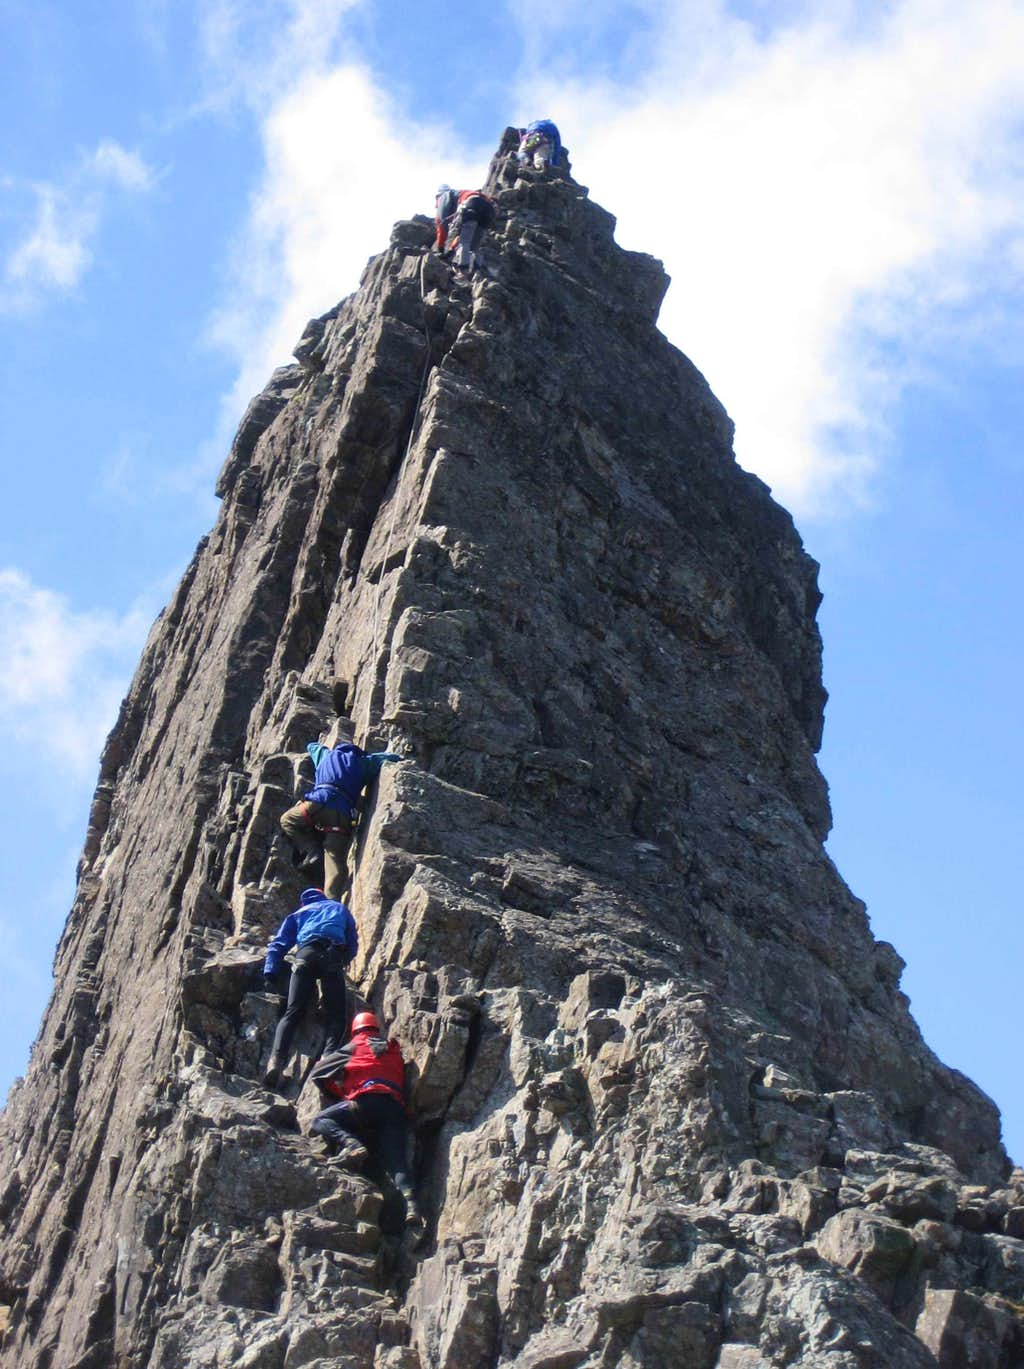 Testing work for non rock climbers